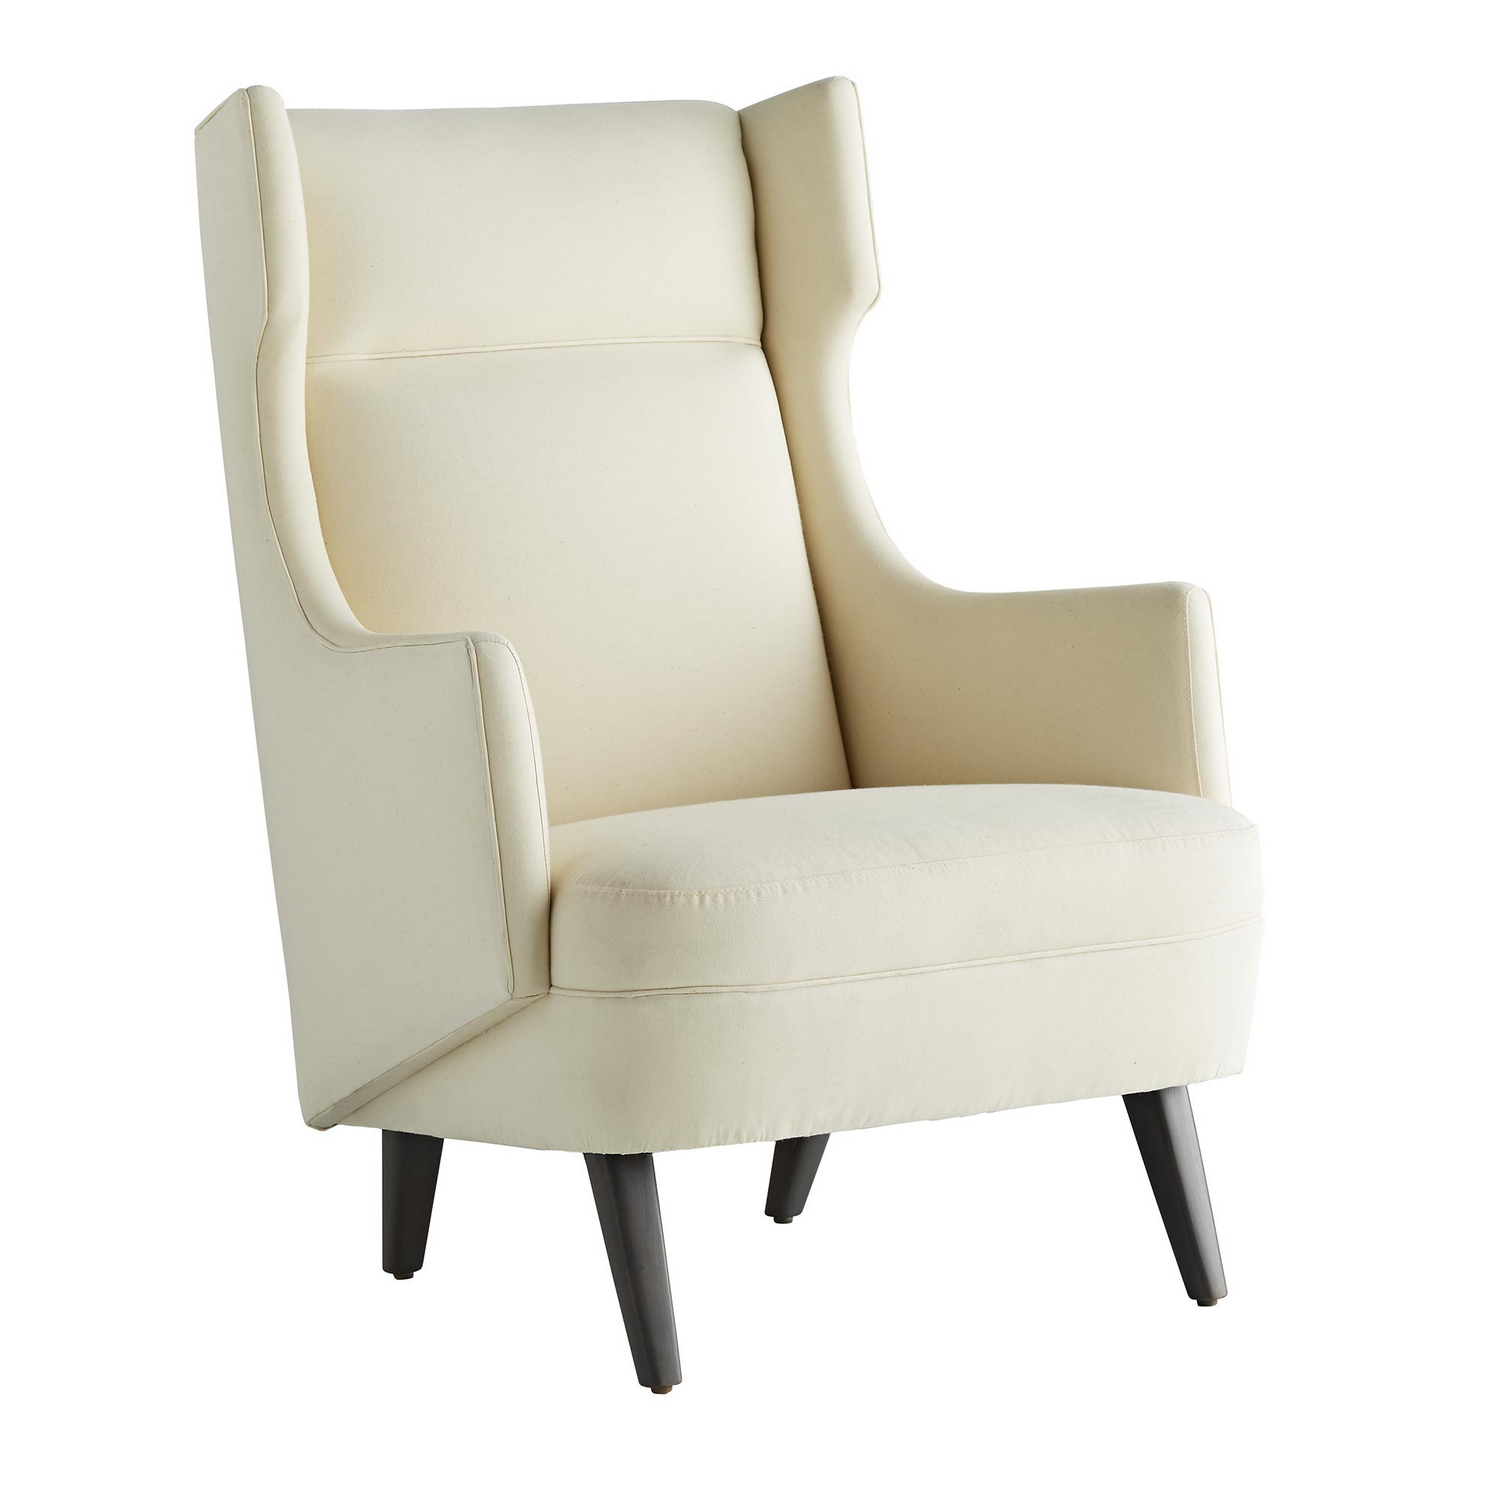 Chair by Arteriors 8092